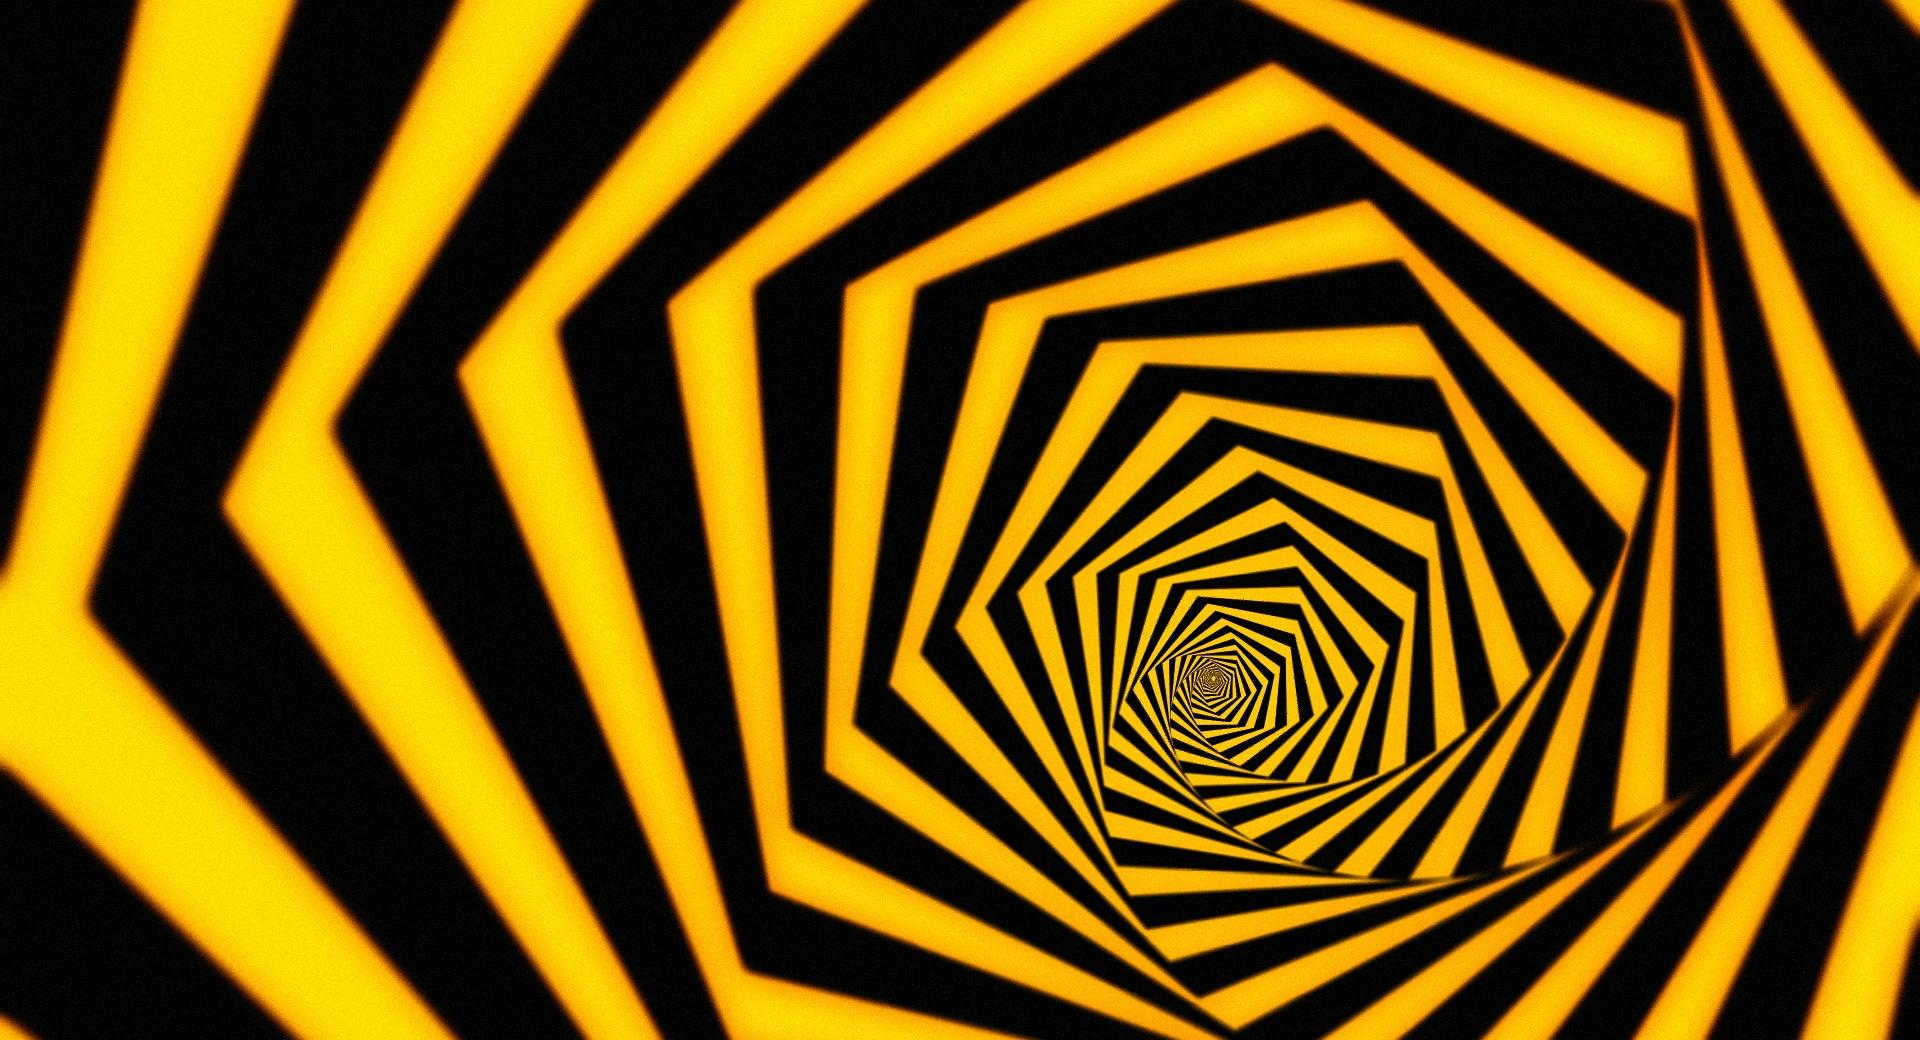 Hypnotic at 1334 x 750 iPhone 7 size wallpapers HD quality